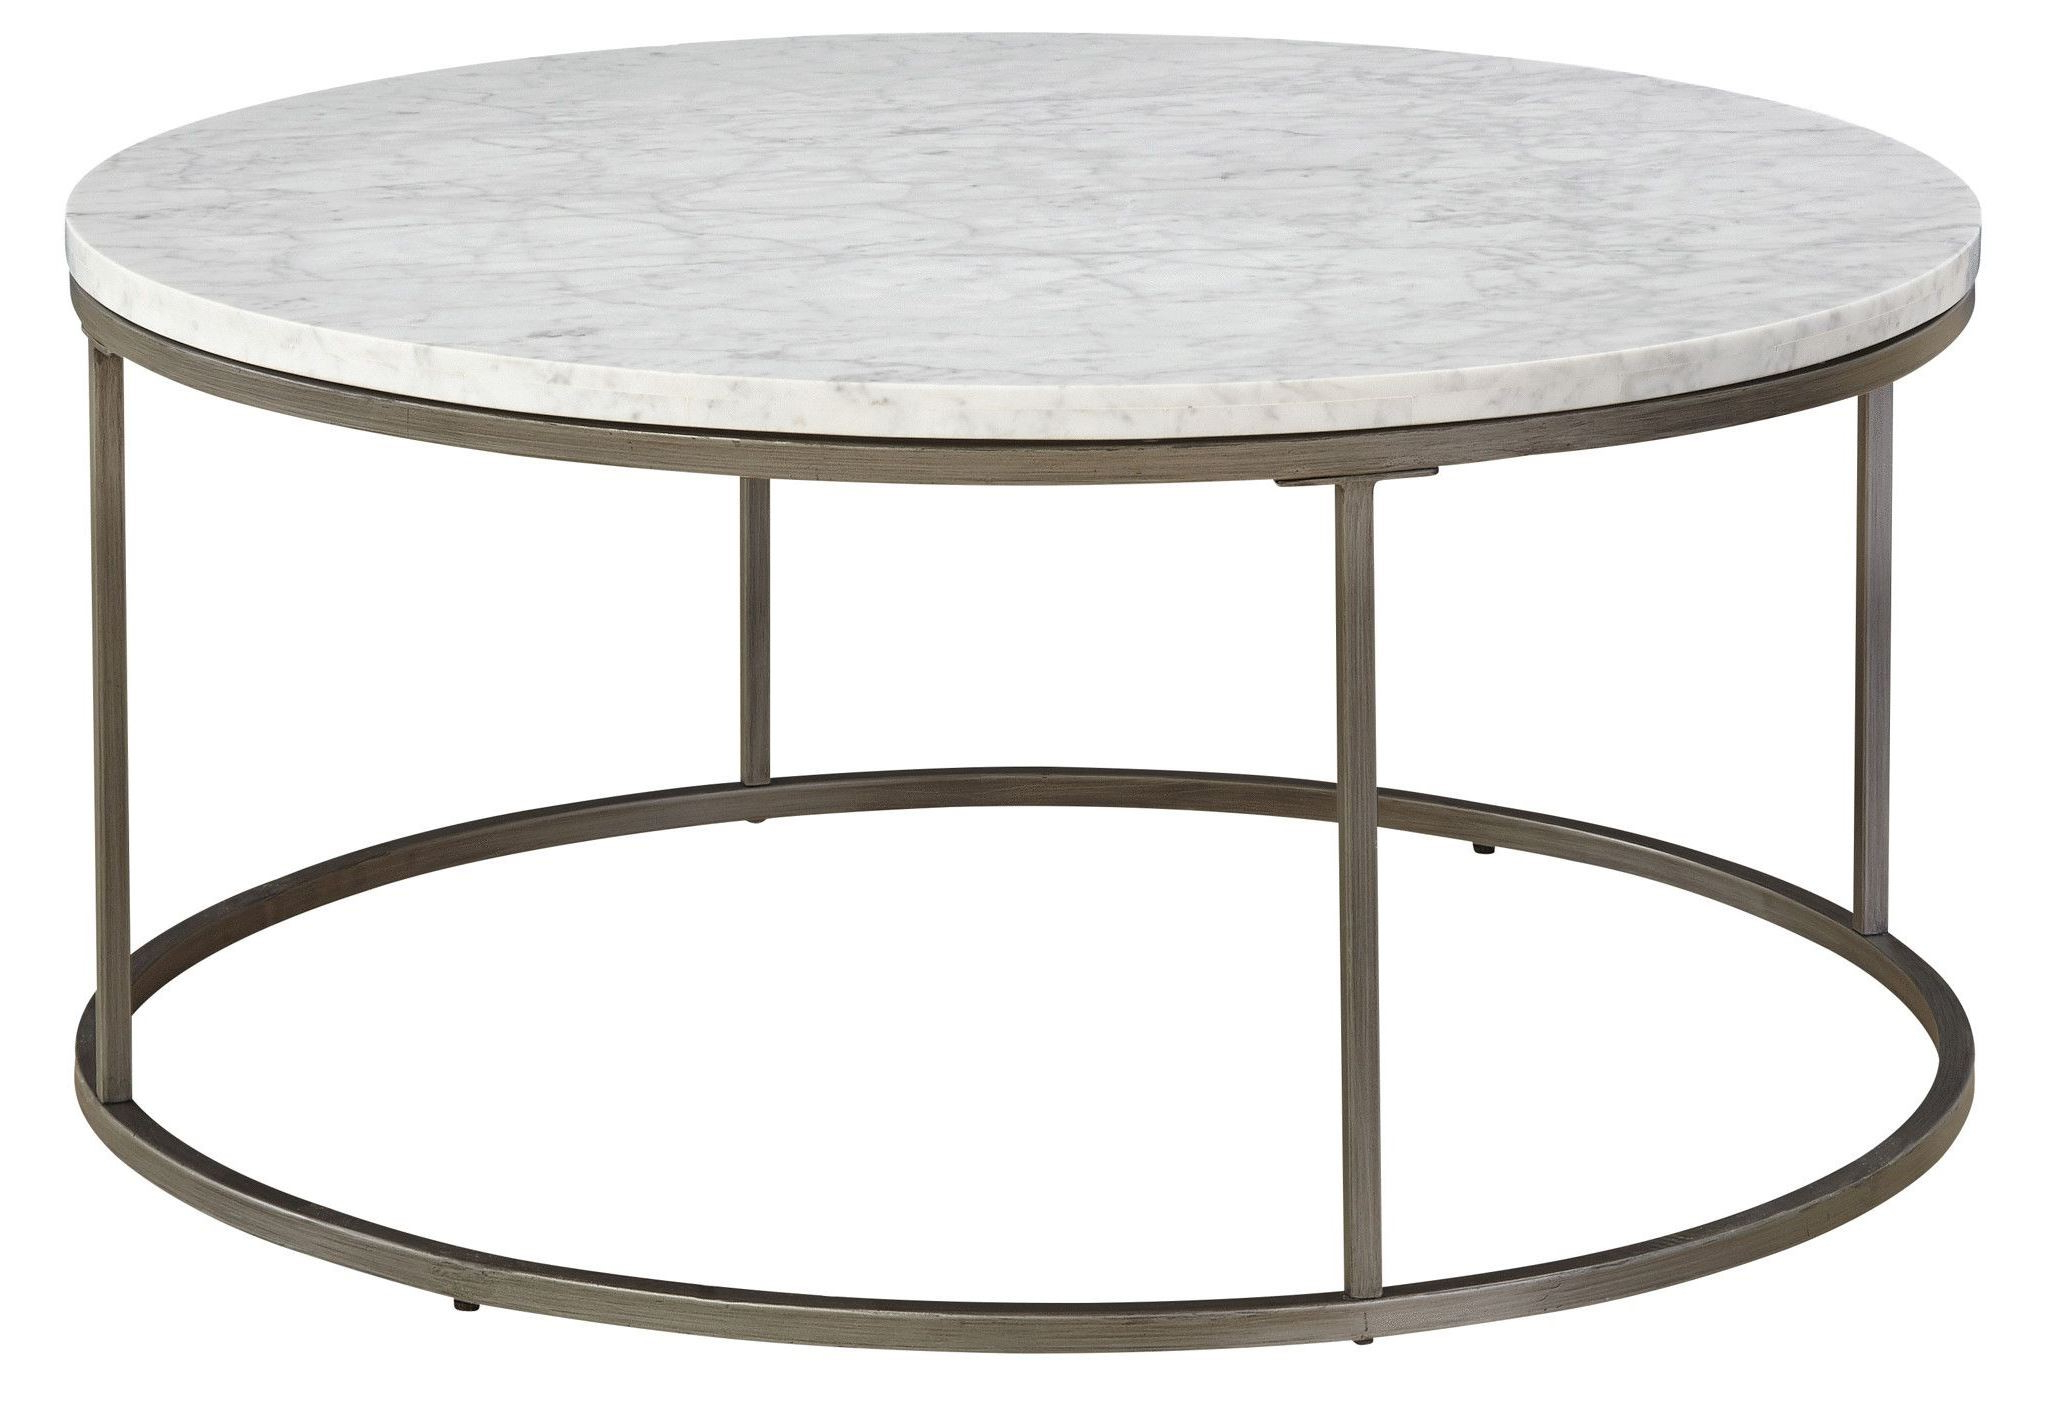 Round Marble Table Top Round Marble Table Tops For Sale In Most Current Smart Round Marble Top Coffee Tables (View 15 of 20)